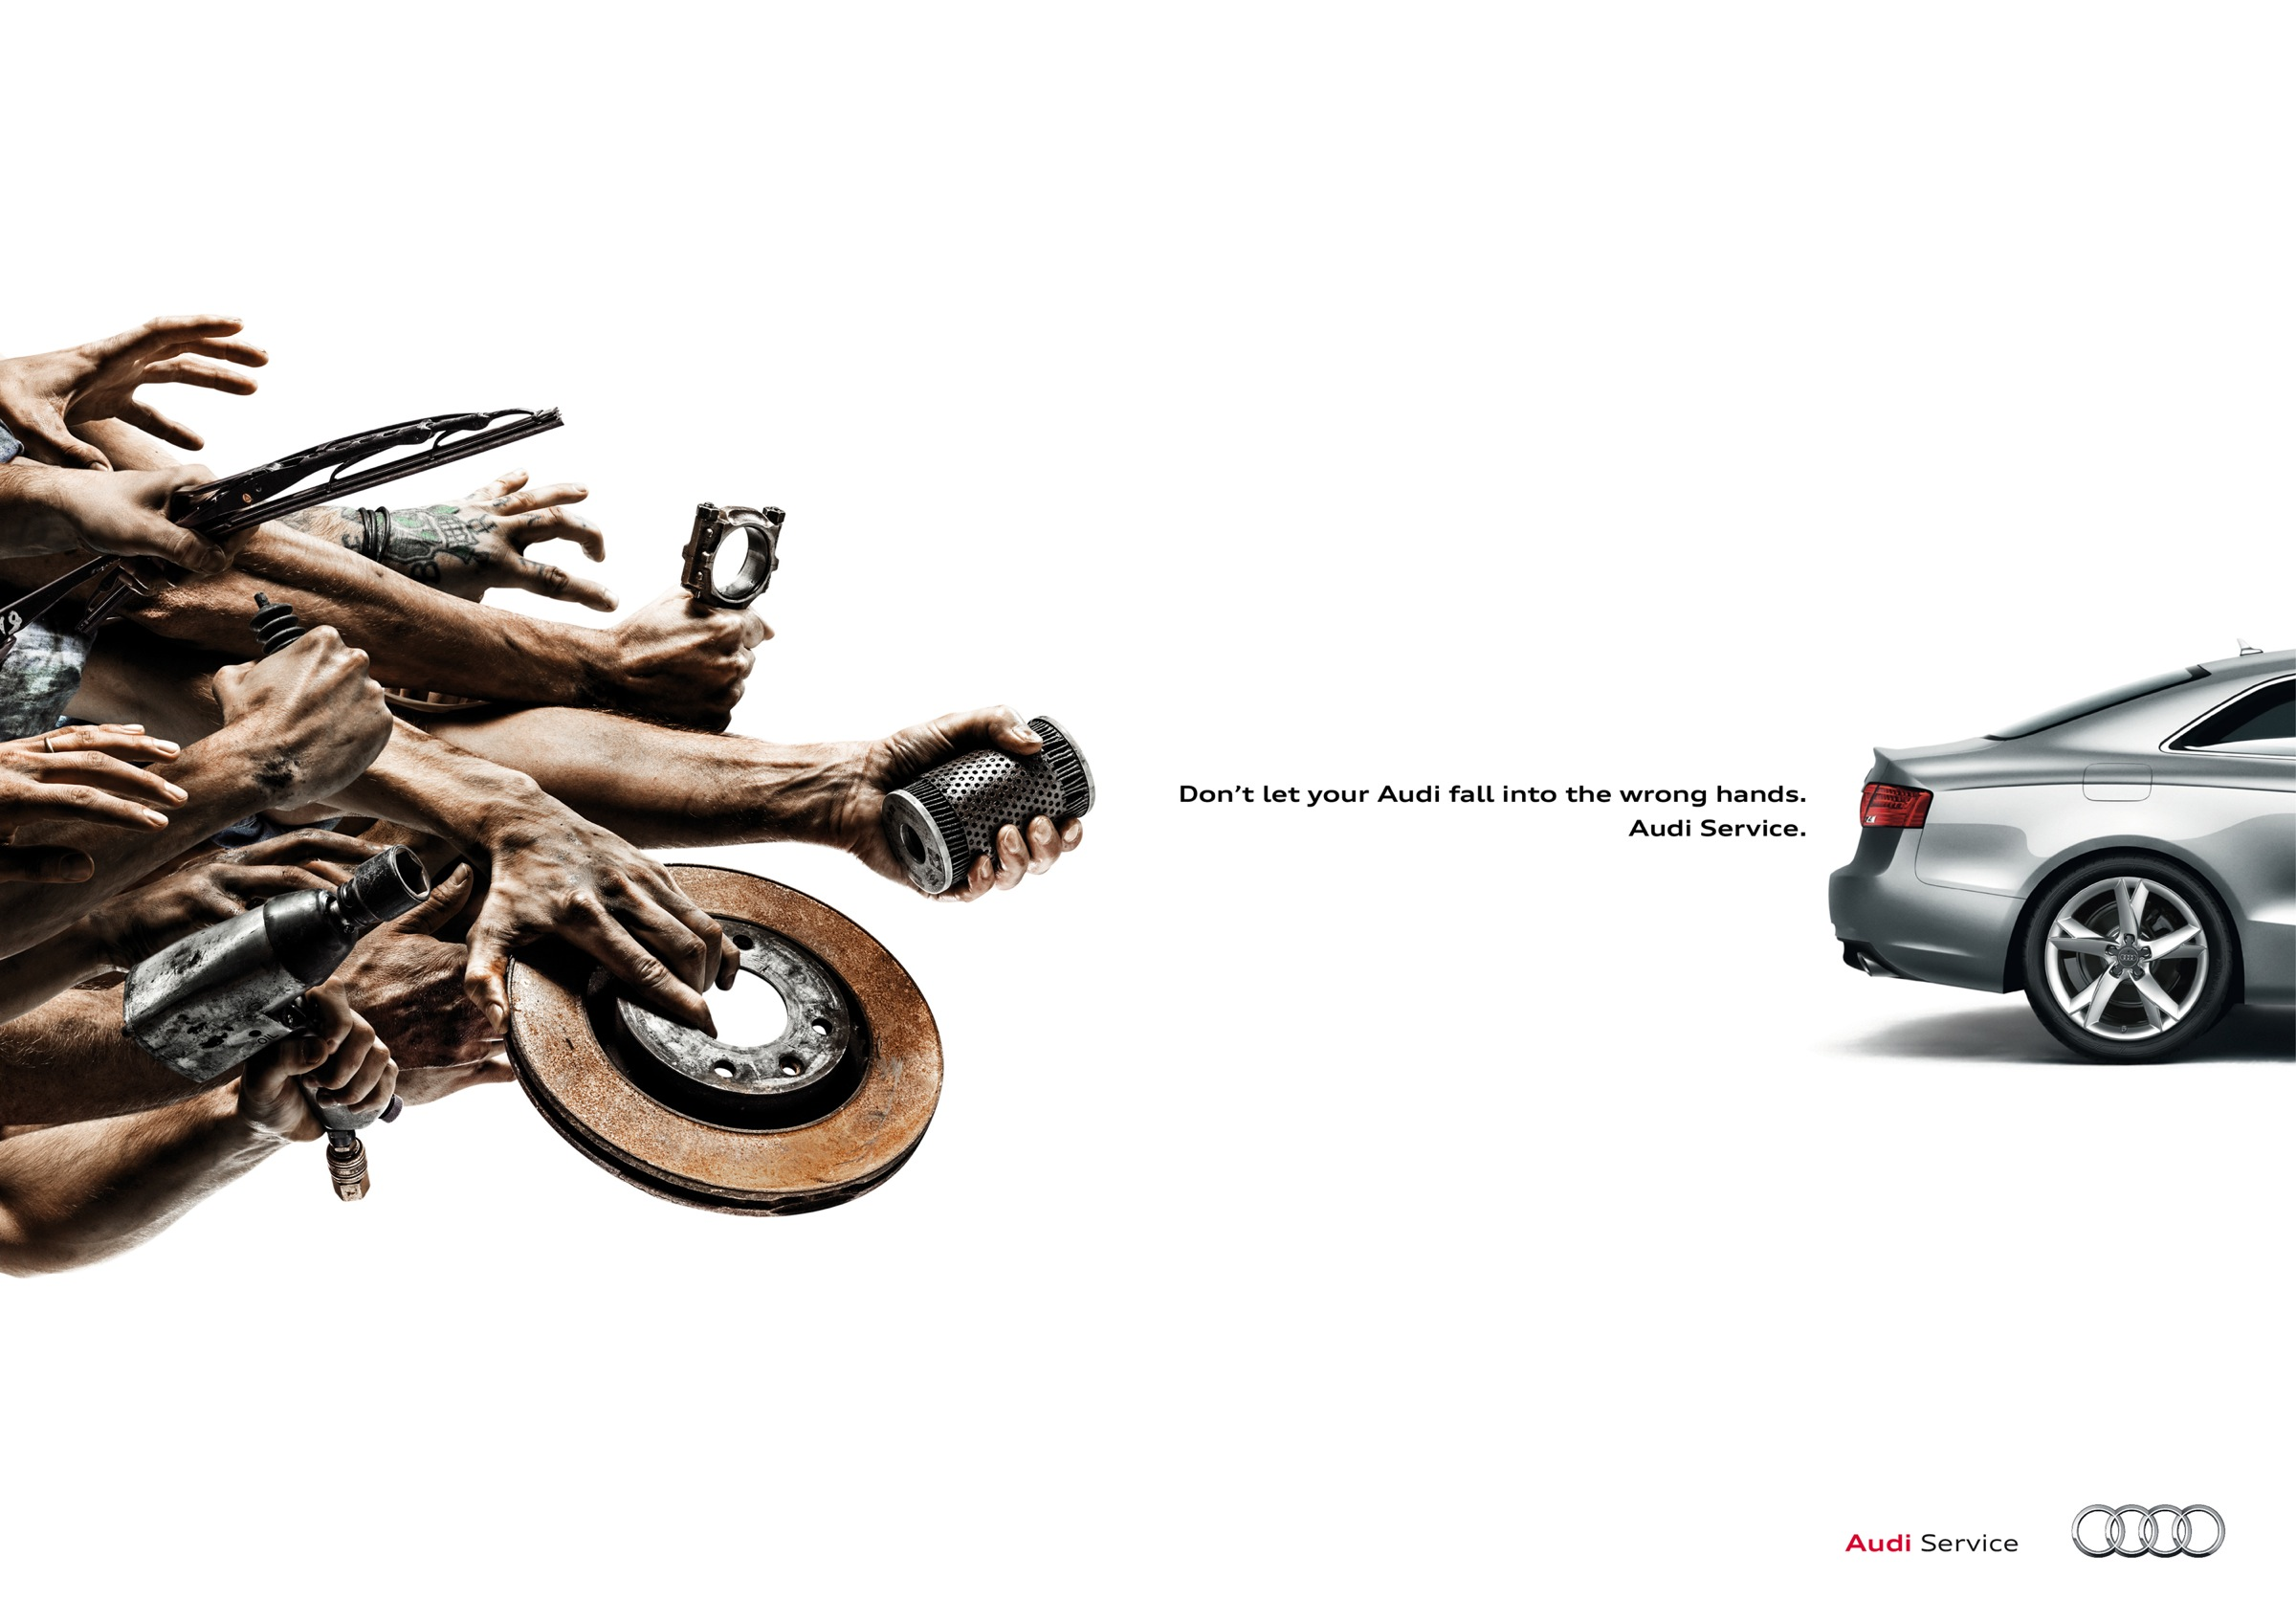 audi-dont-let-your-audi-fall-into-the-wrong-hands-print-369366-adeevee